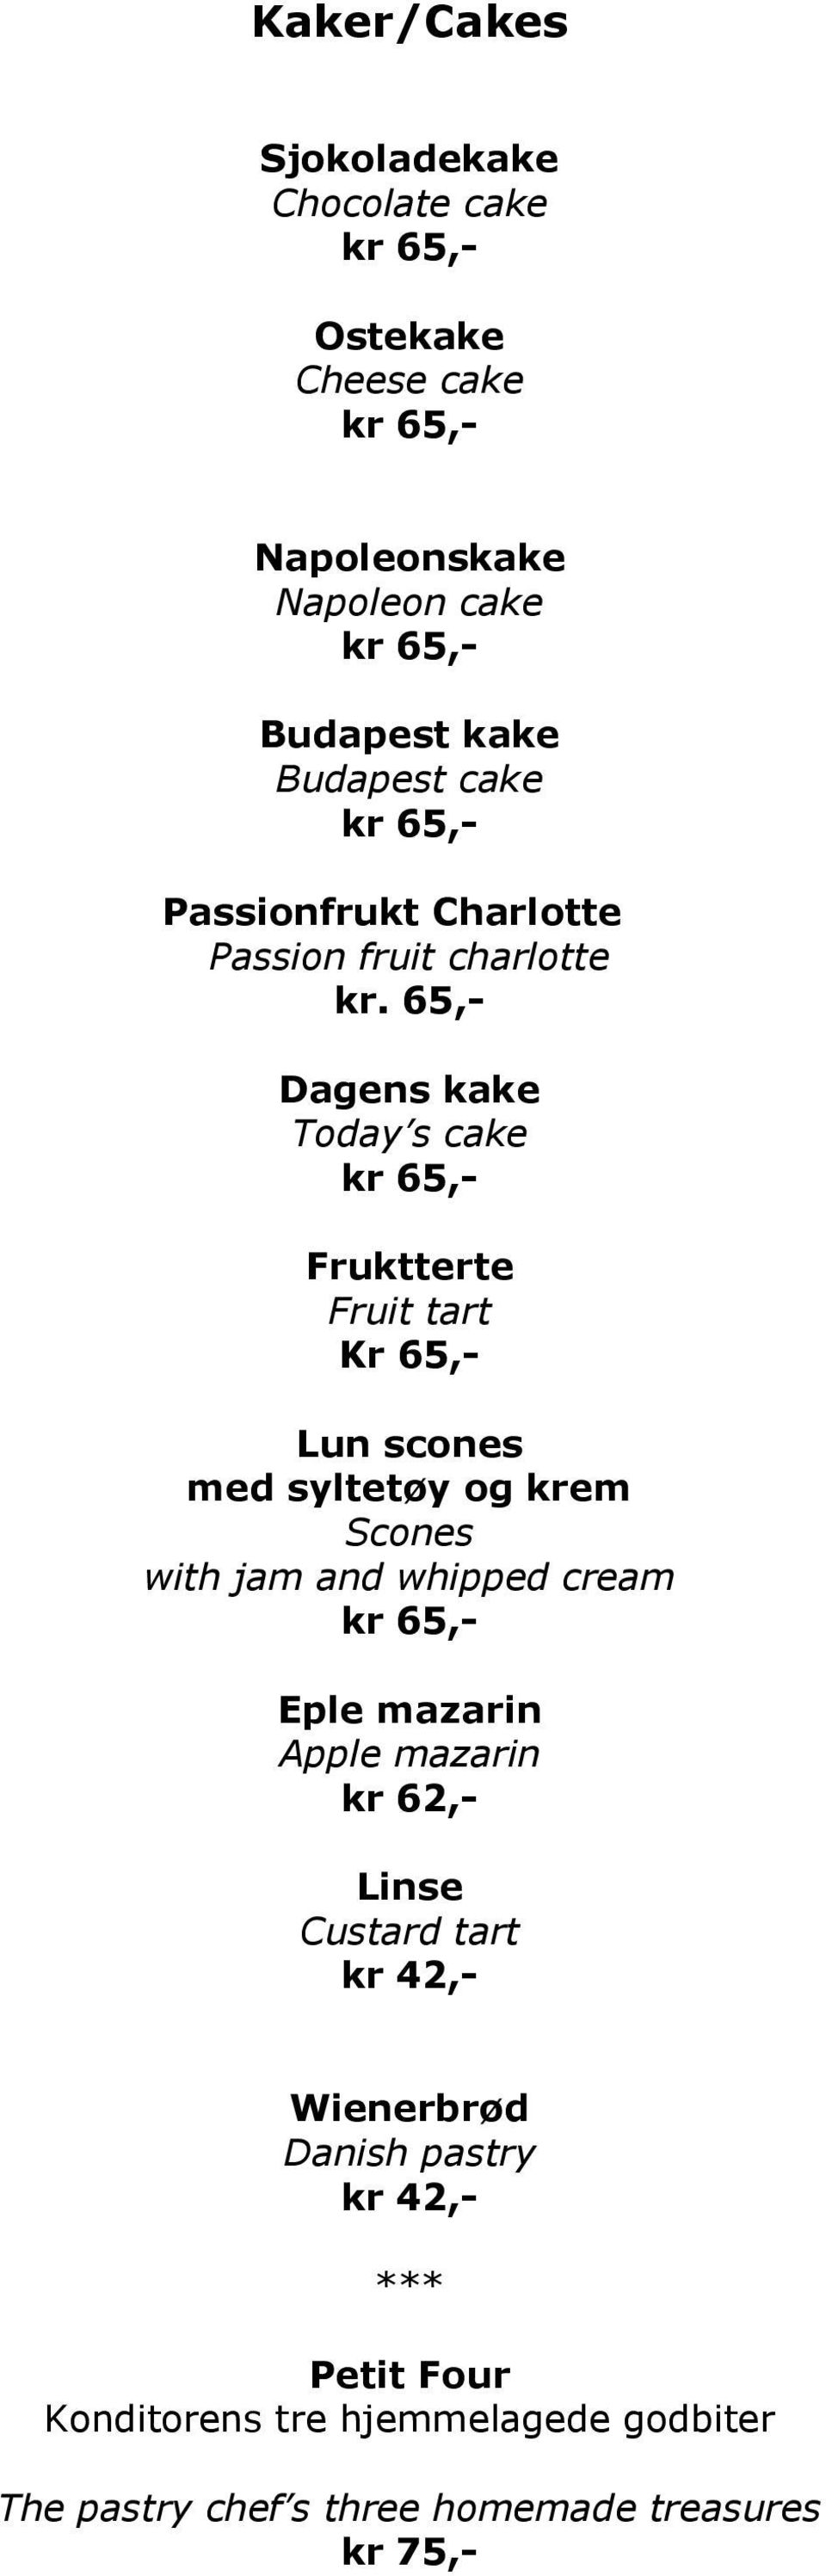 65,- Dagens kake Today s cake Fruktterte Fruit tart Kr 65,- Lun scones med syltetøy og krem Scones with jam and whipped